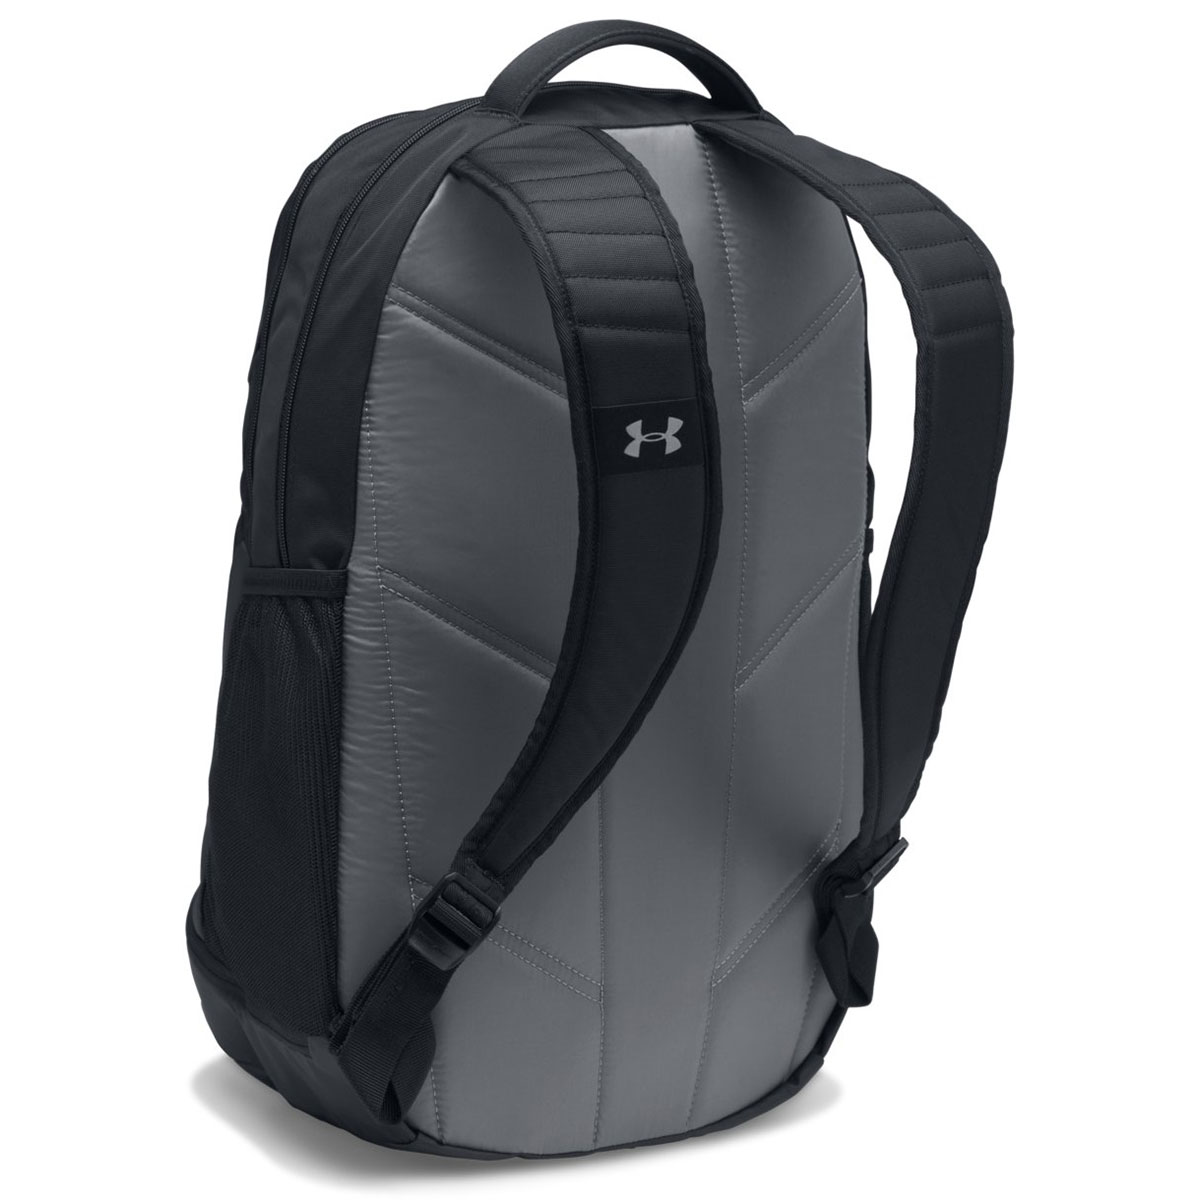 Under Armour 2019 UA Hustle 3.0 Backpack Rucksack Gym Training ... 502130e34cf35